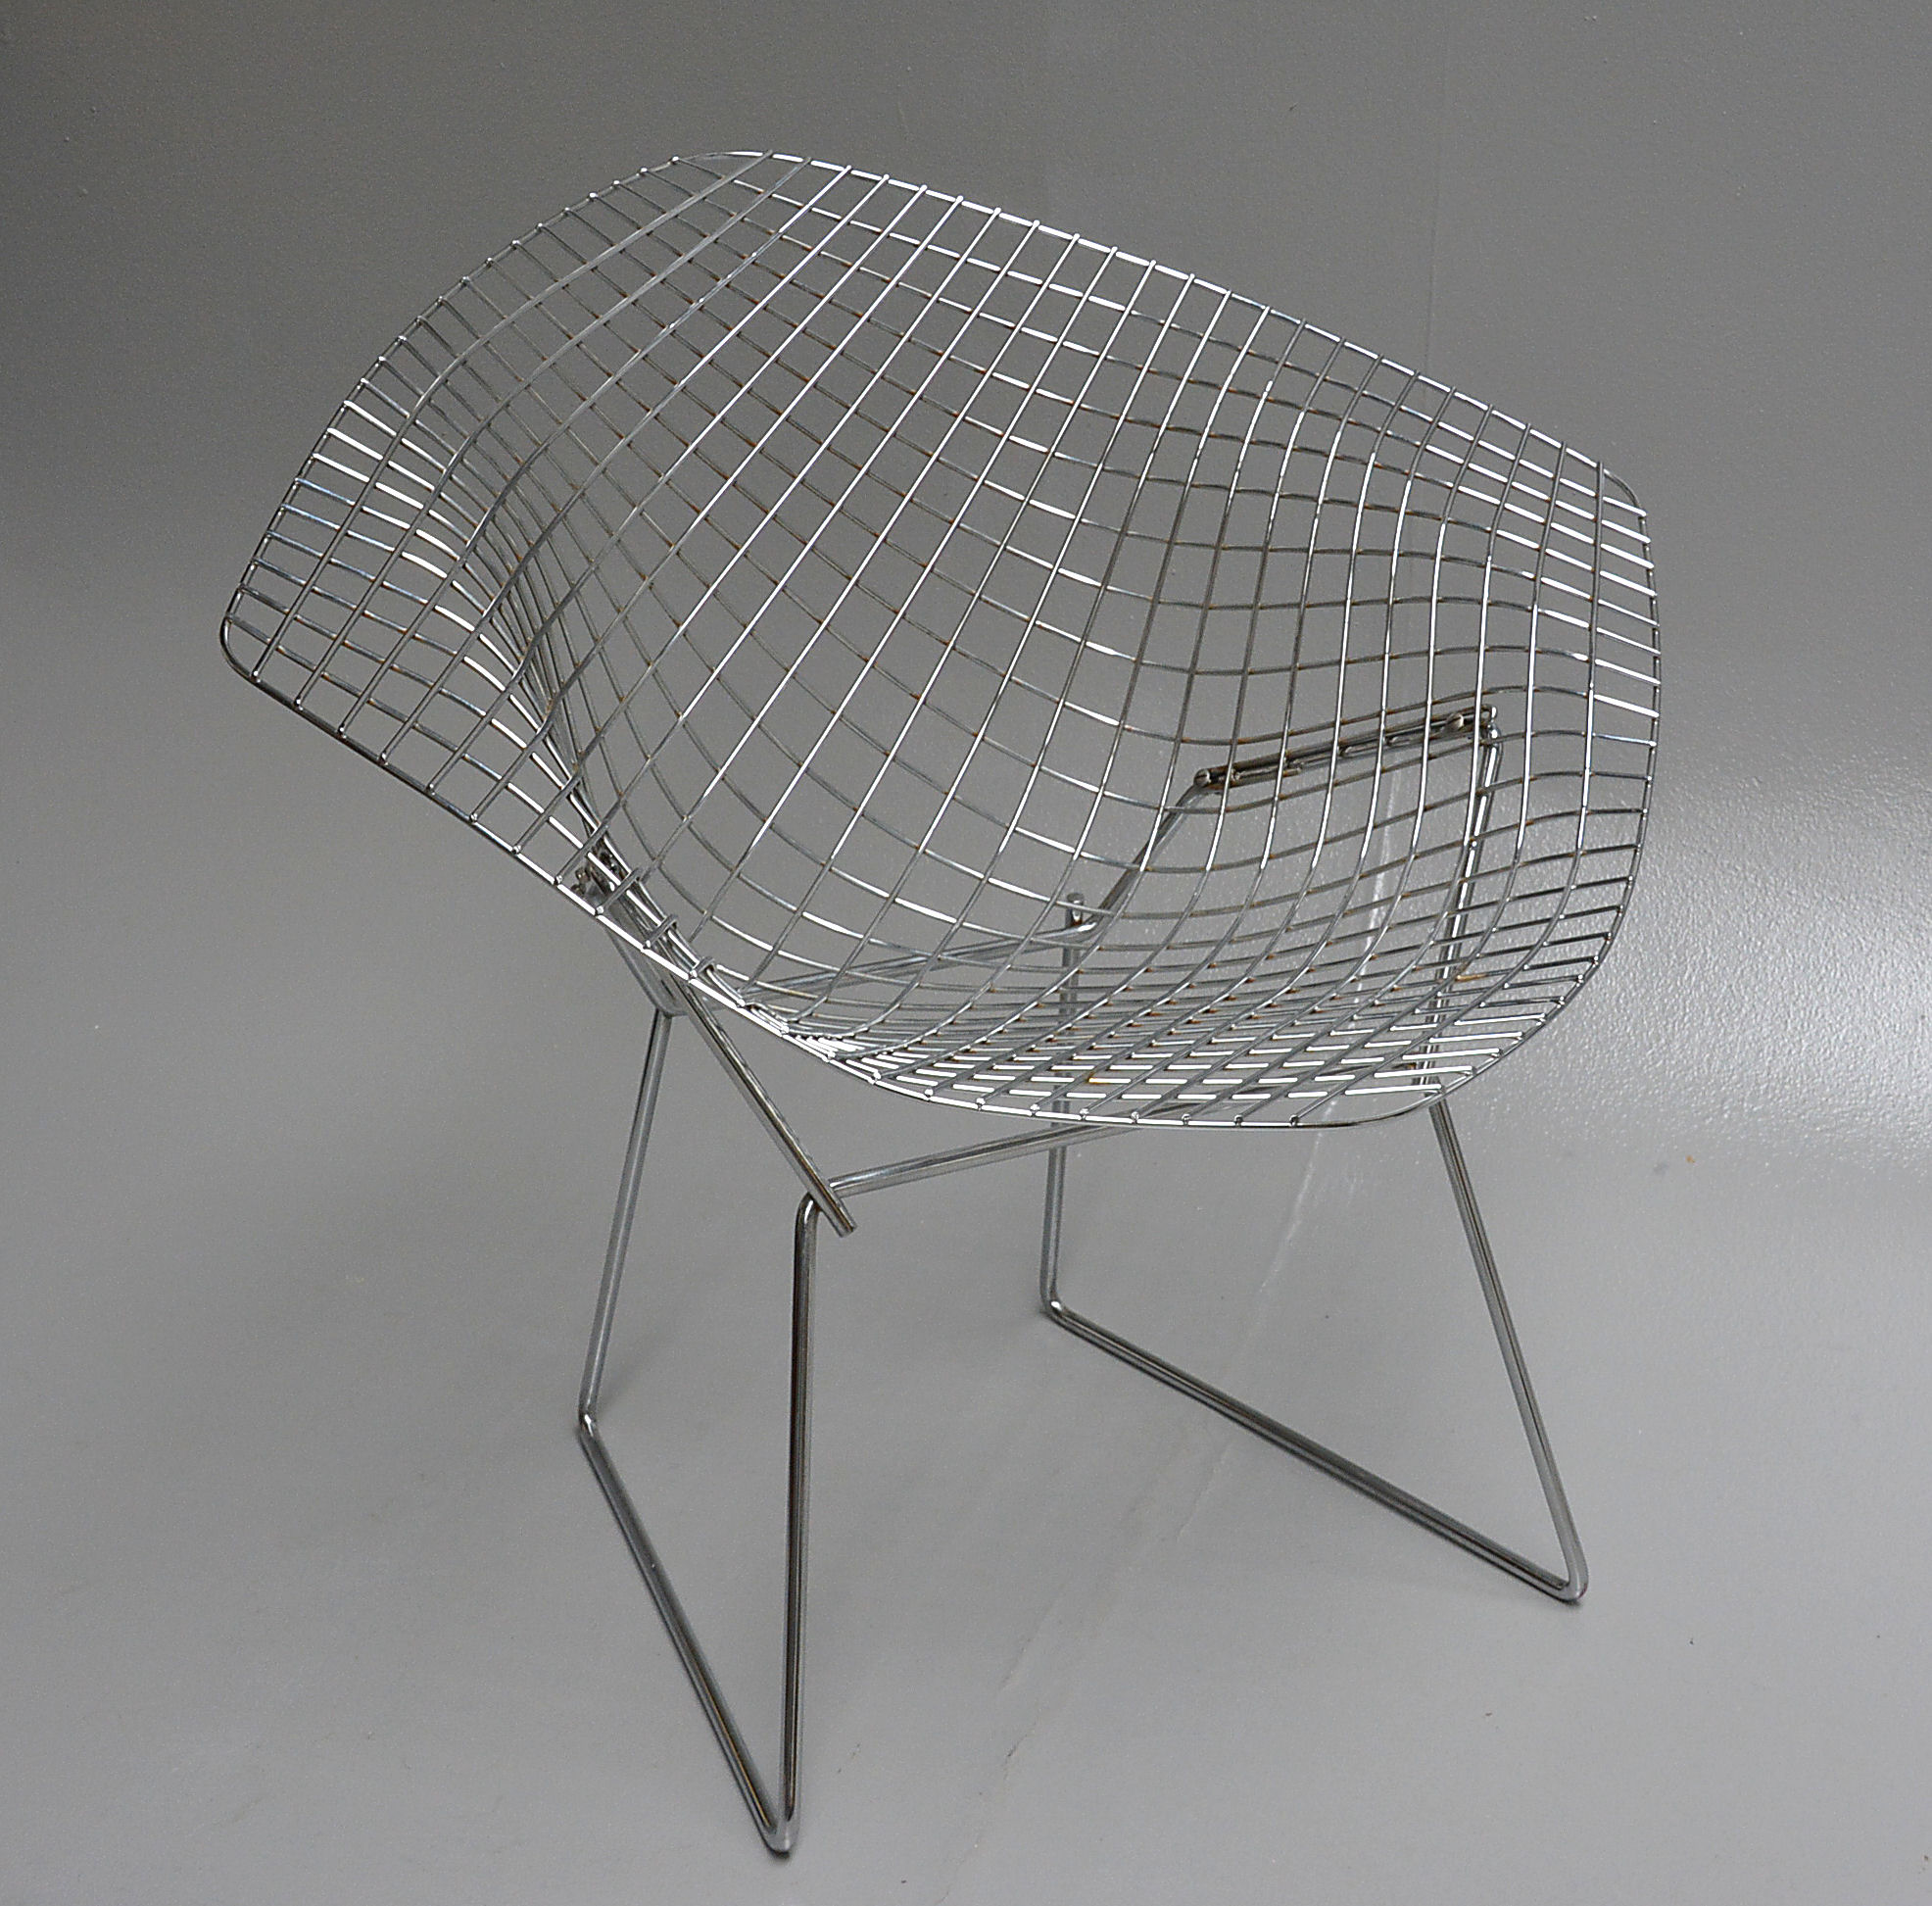 Harry bertoia appraisal and valuation Find value of Harry bertoia